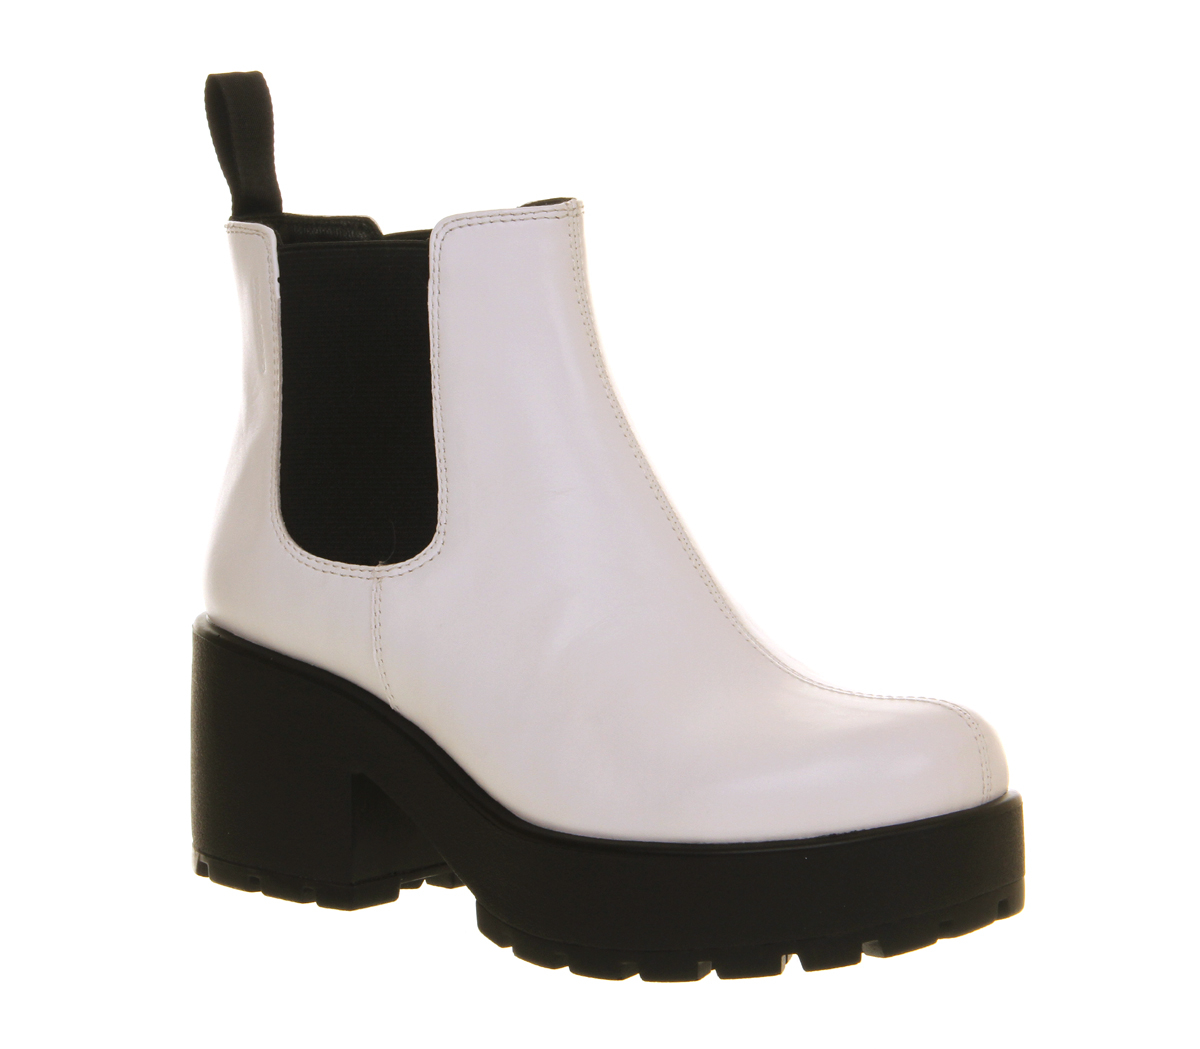 vagabond dioon elastic chelsea boots in white lyst. Black Bedroom Furniture Sets. Home Design Ideas